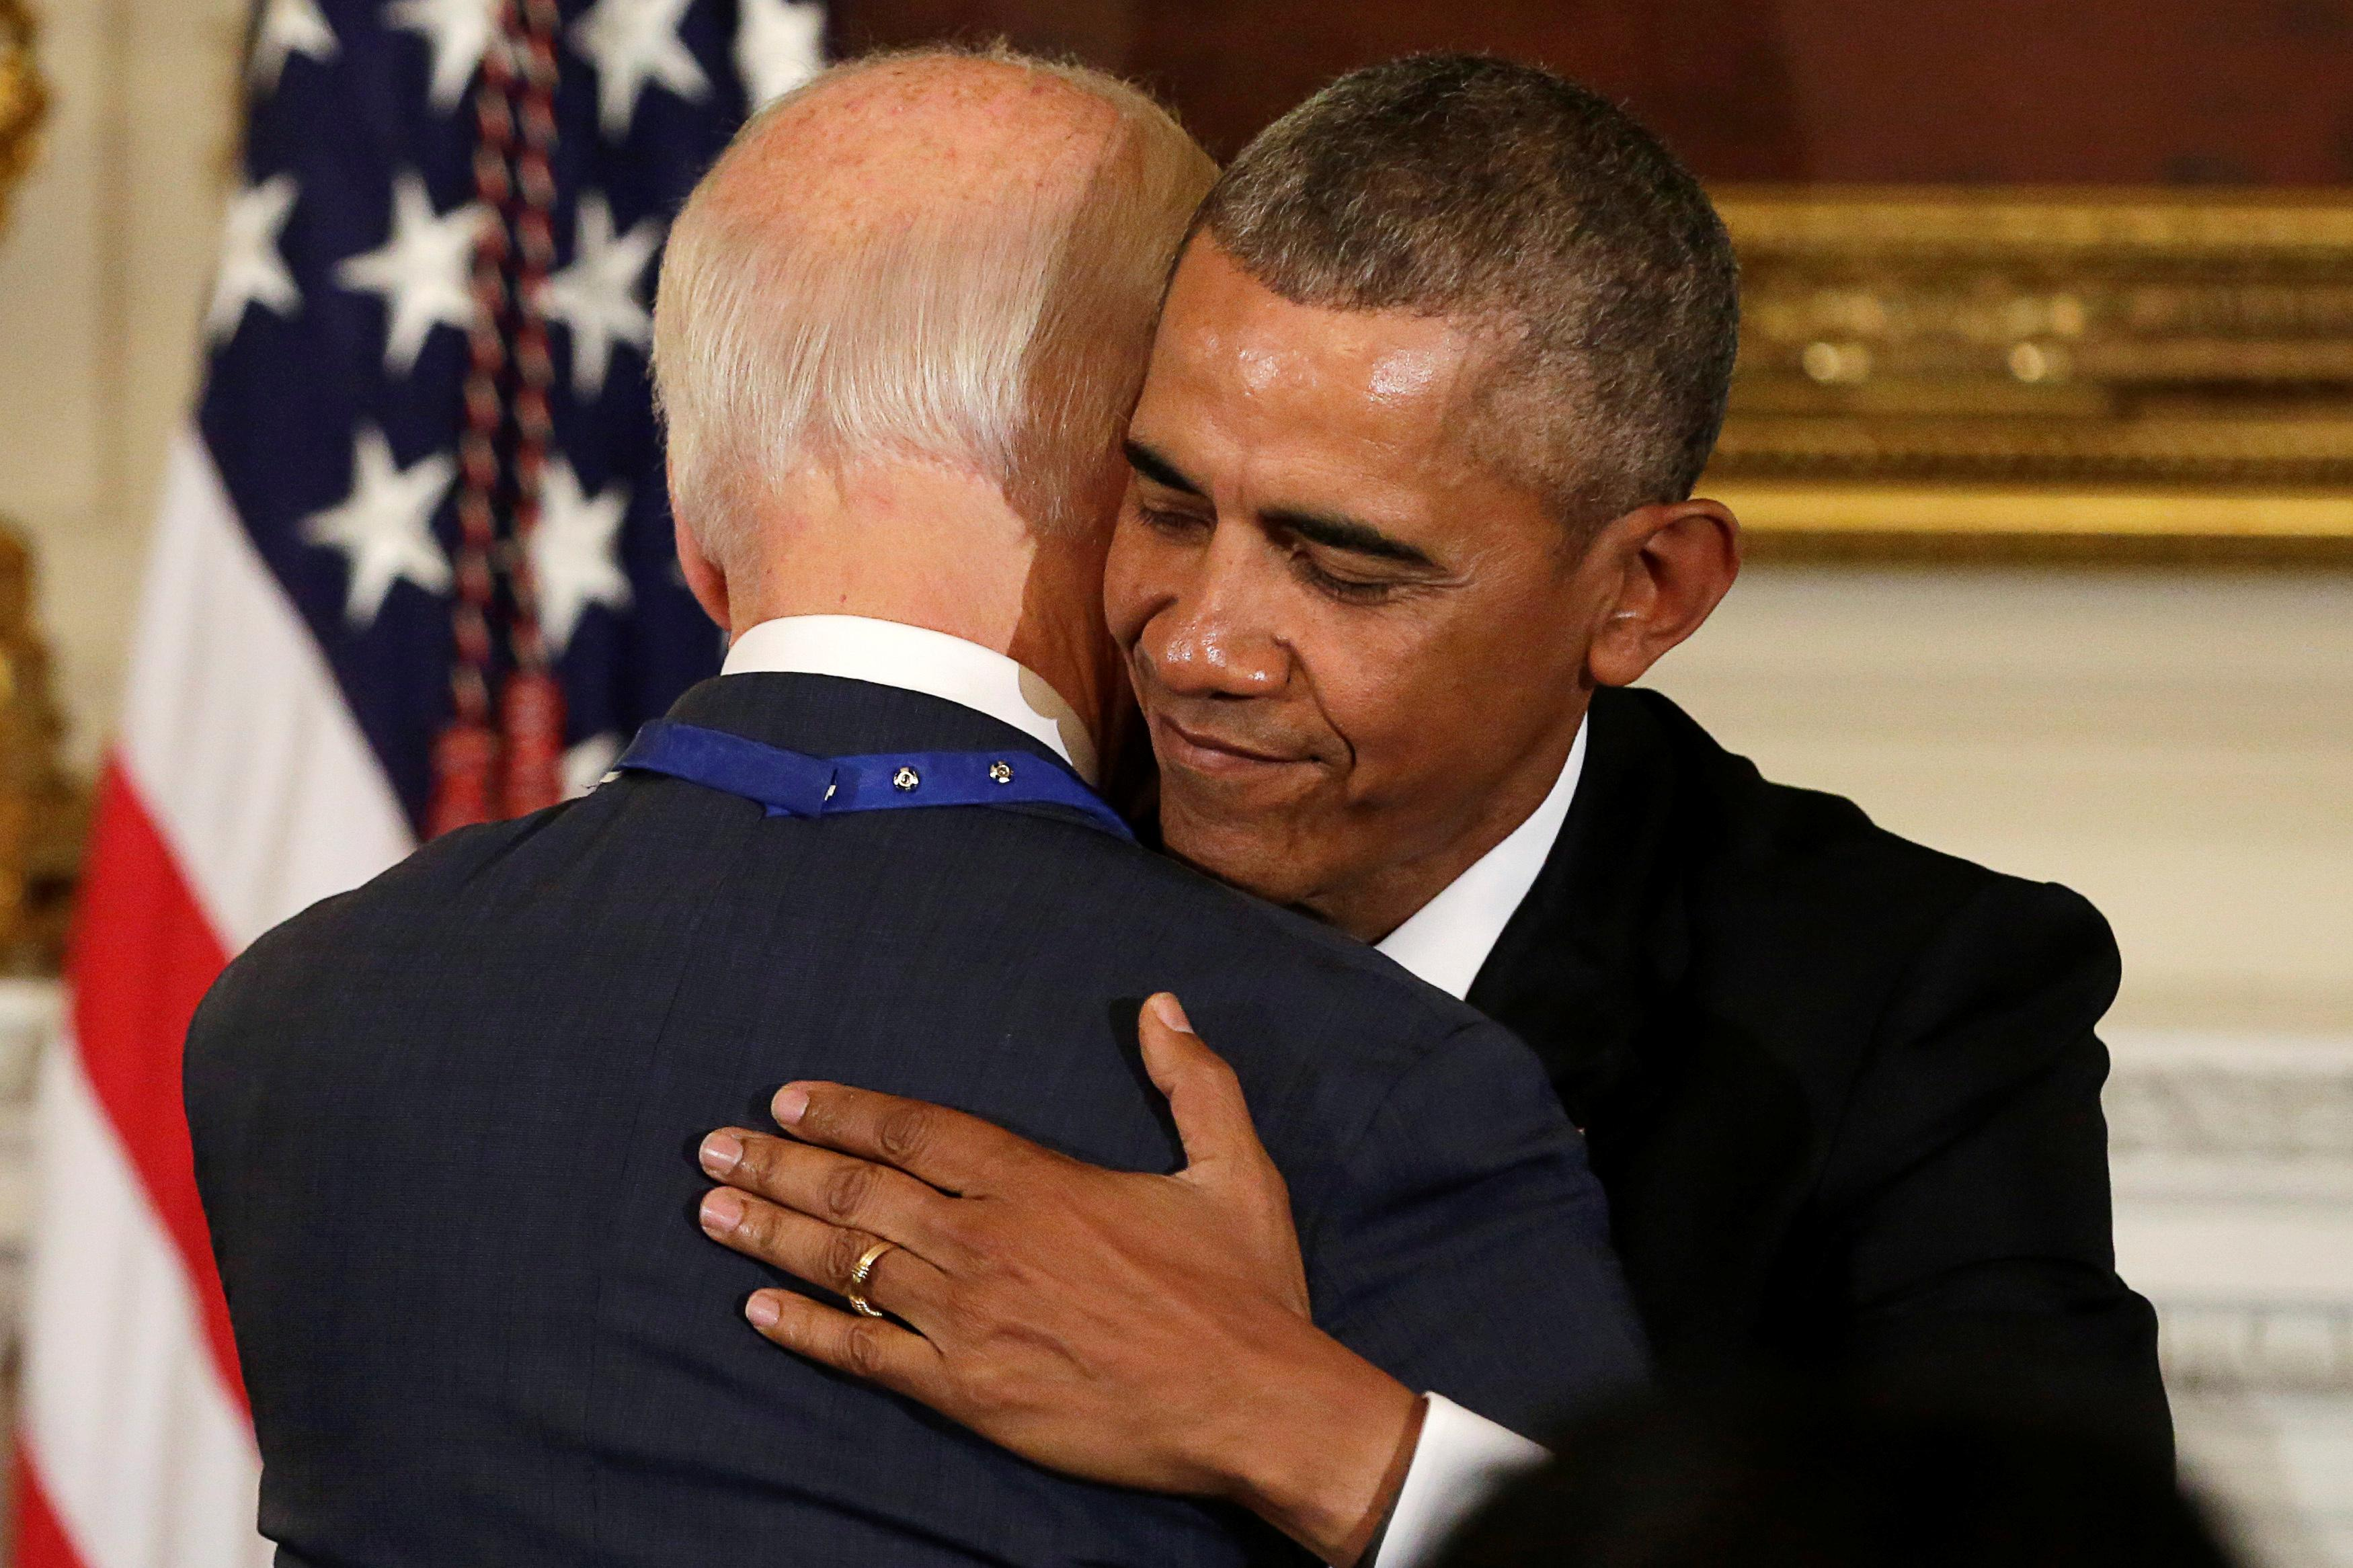 Obama won't endorse Biden or anyone else in primaries